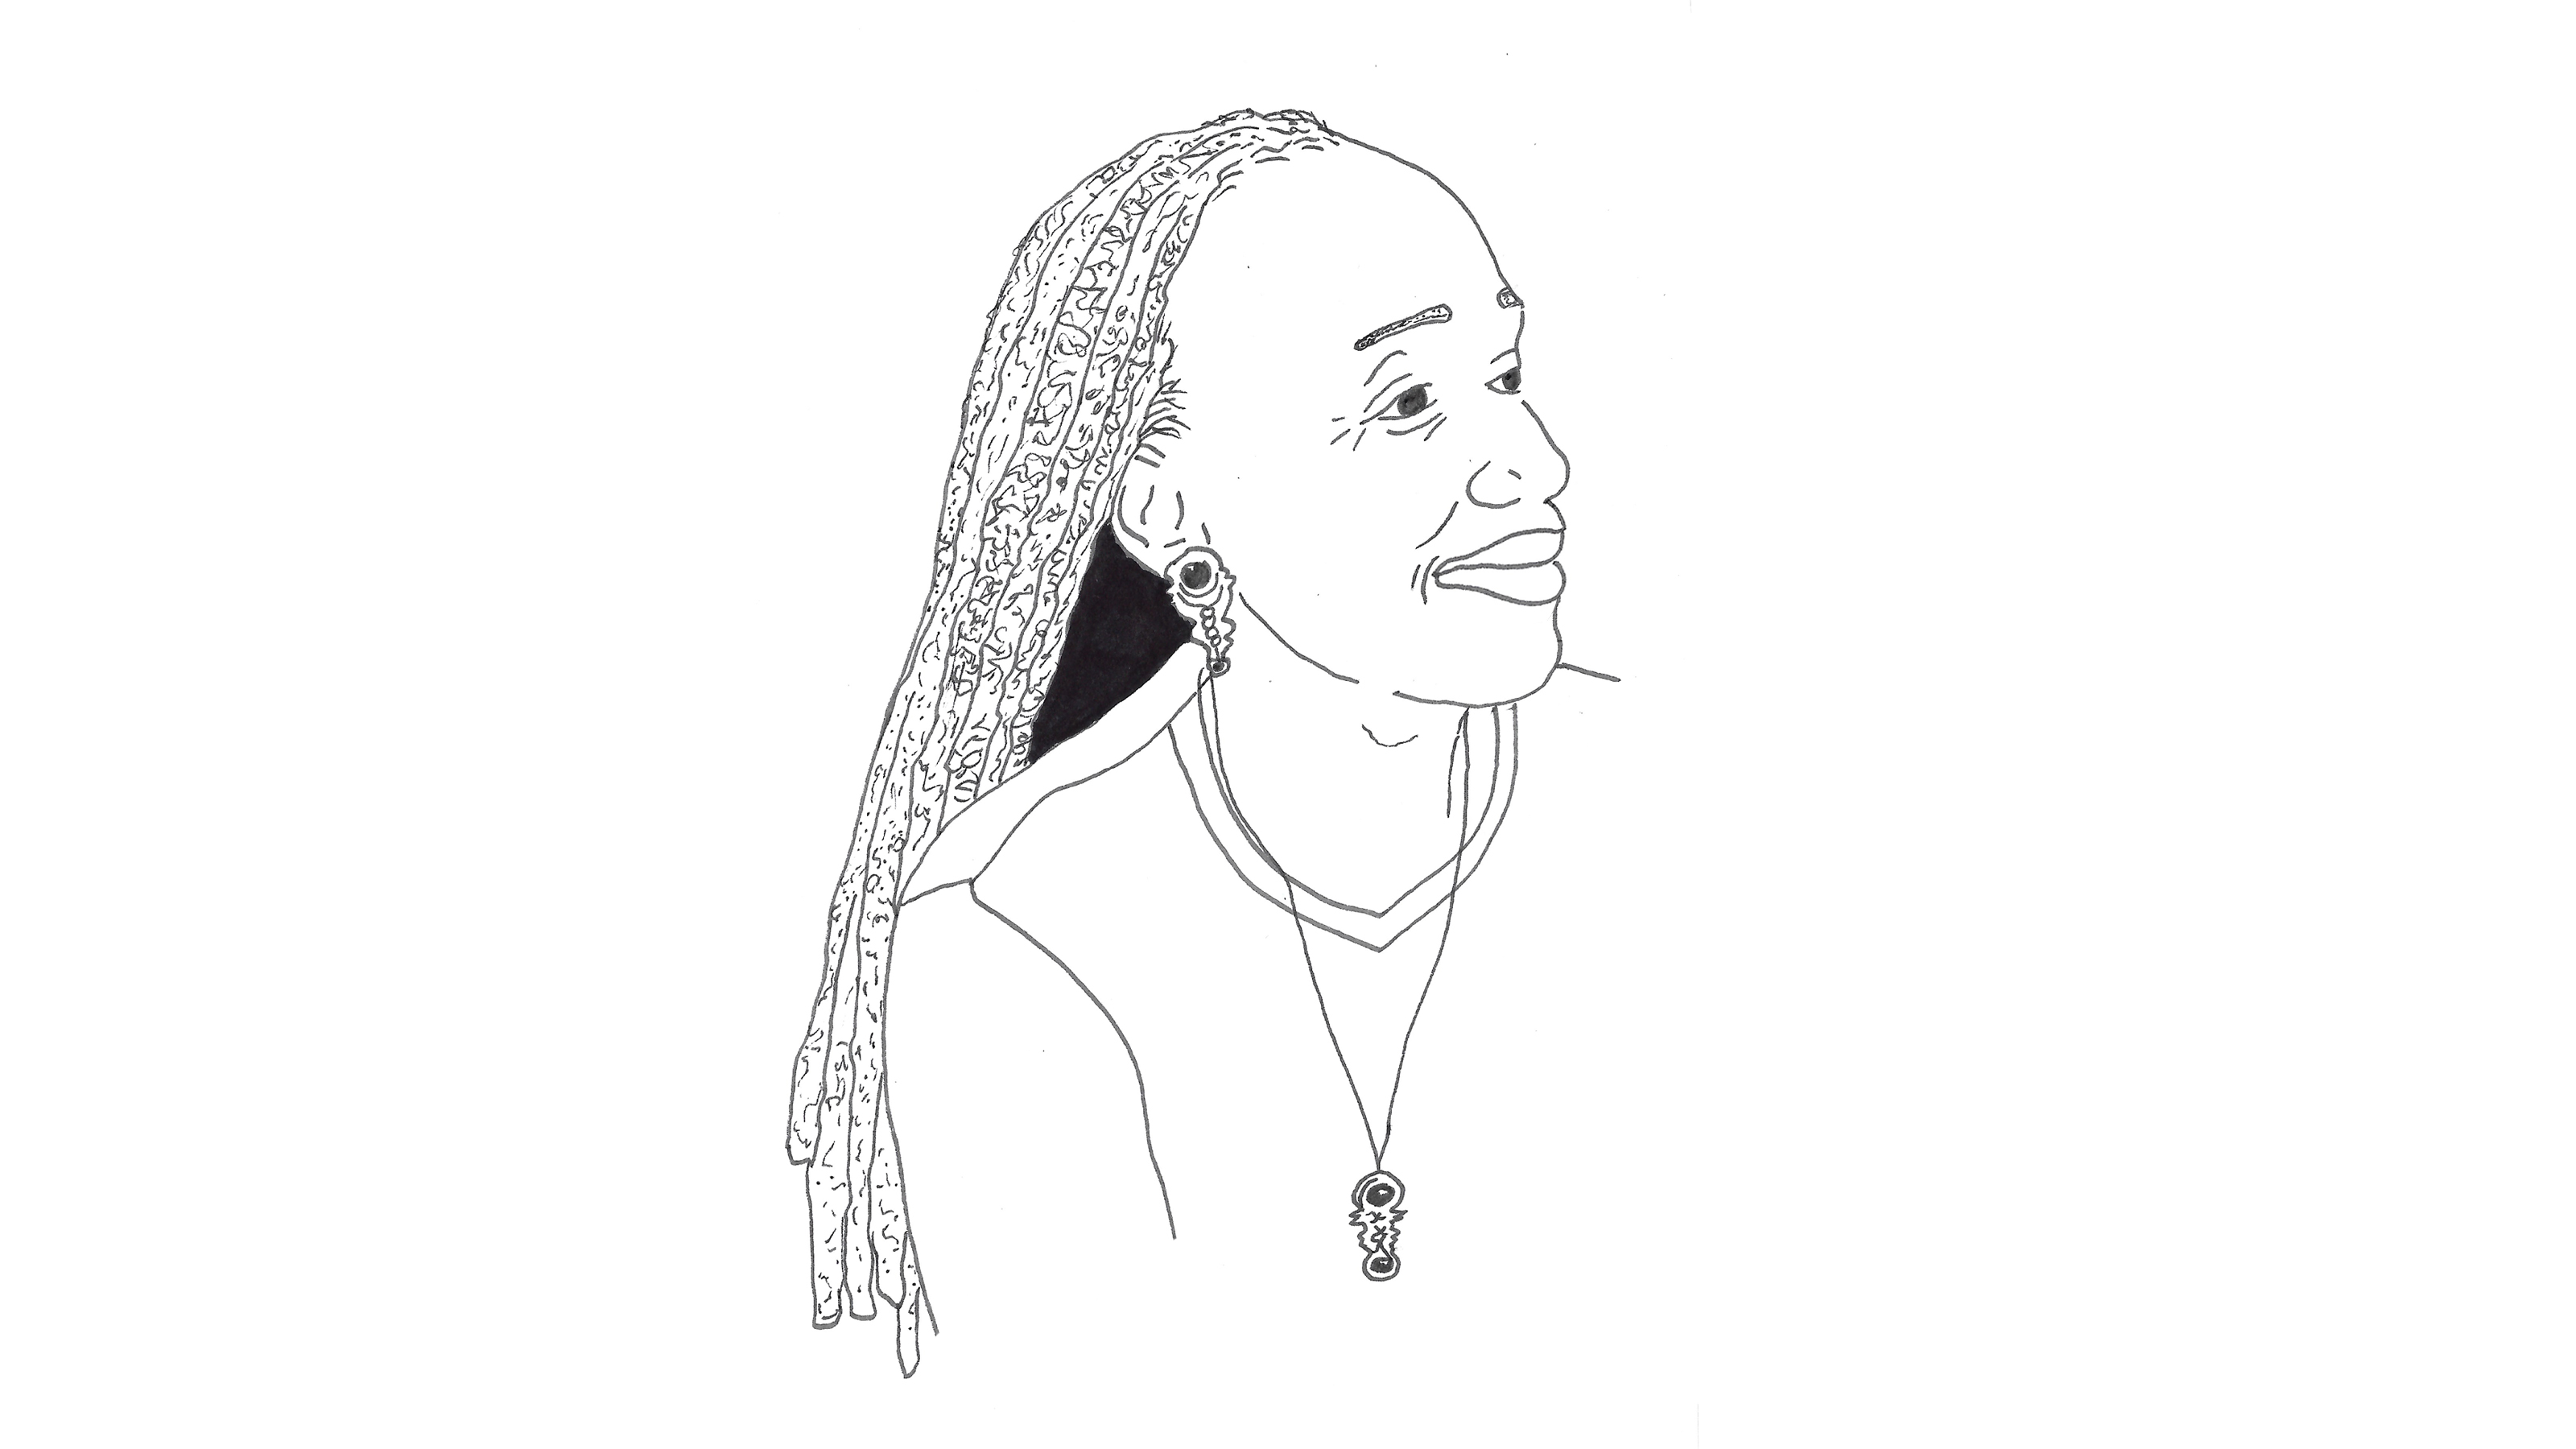 pencil drawing of an actor with long braids